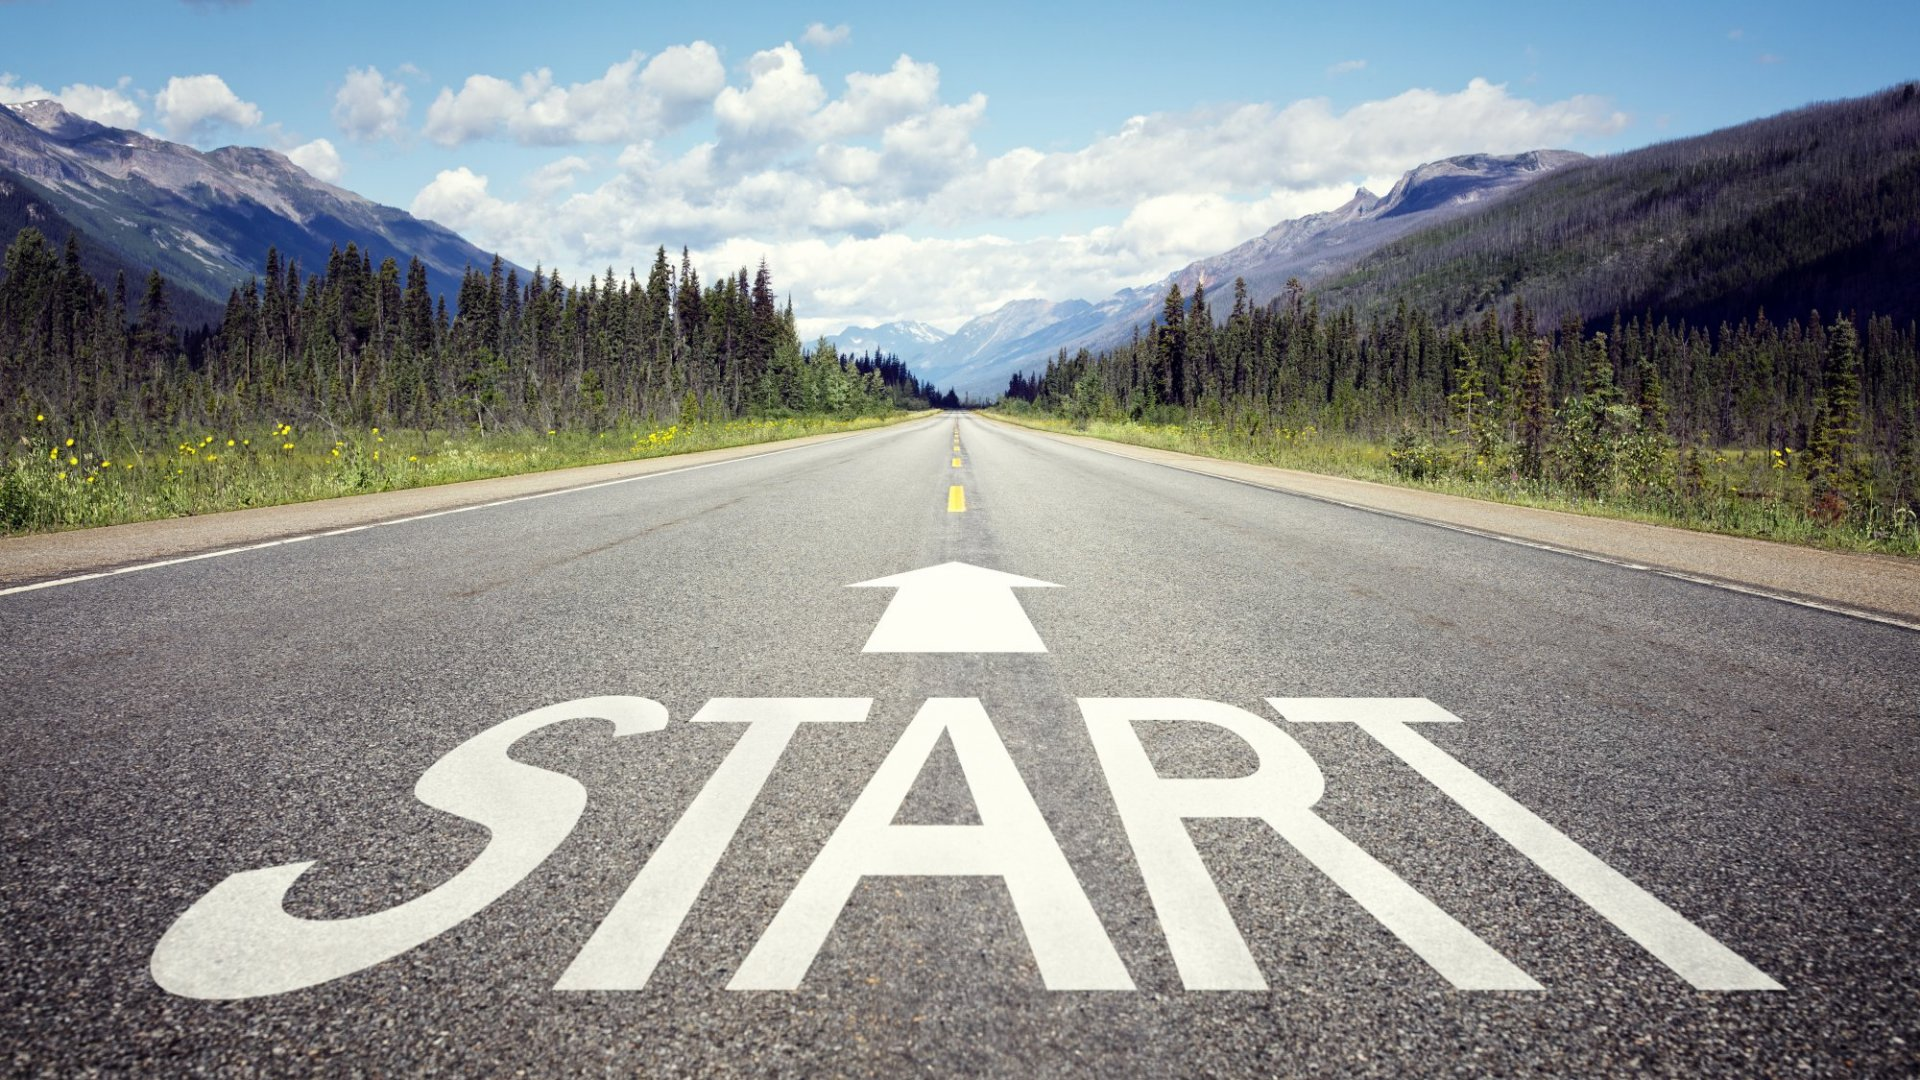 Should You Start a Business? Ask Yourself These 4 Questions First